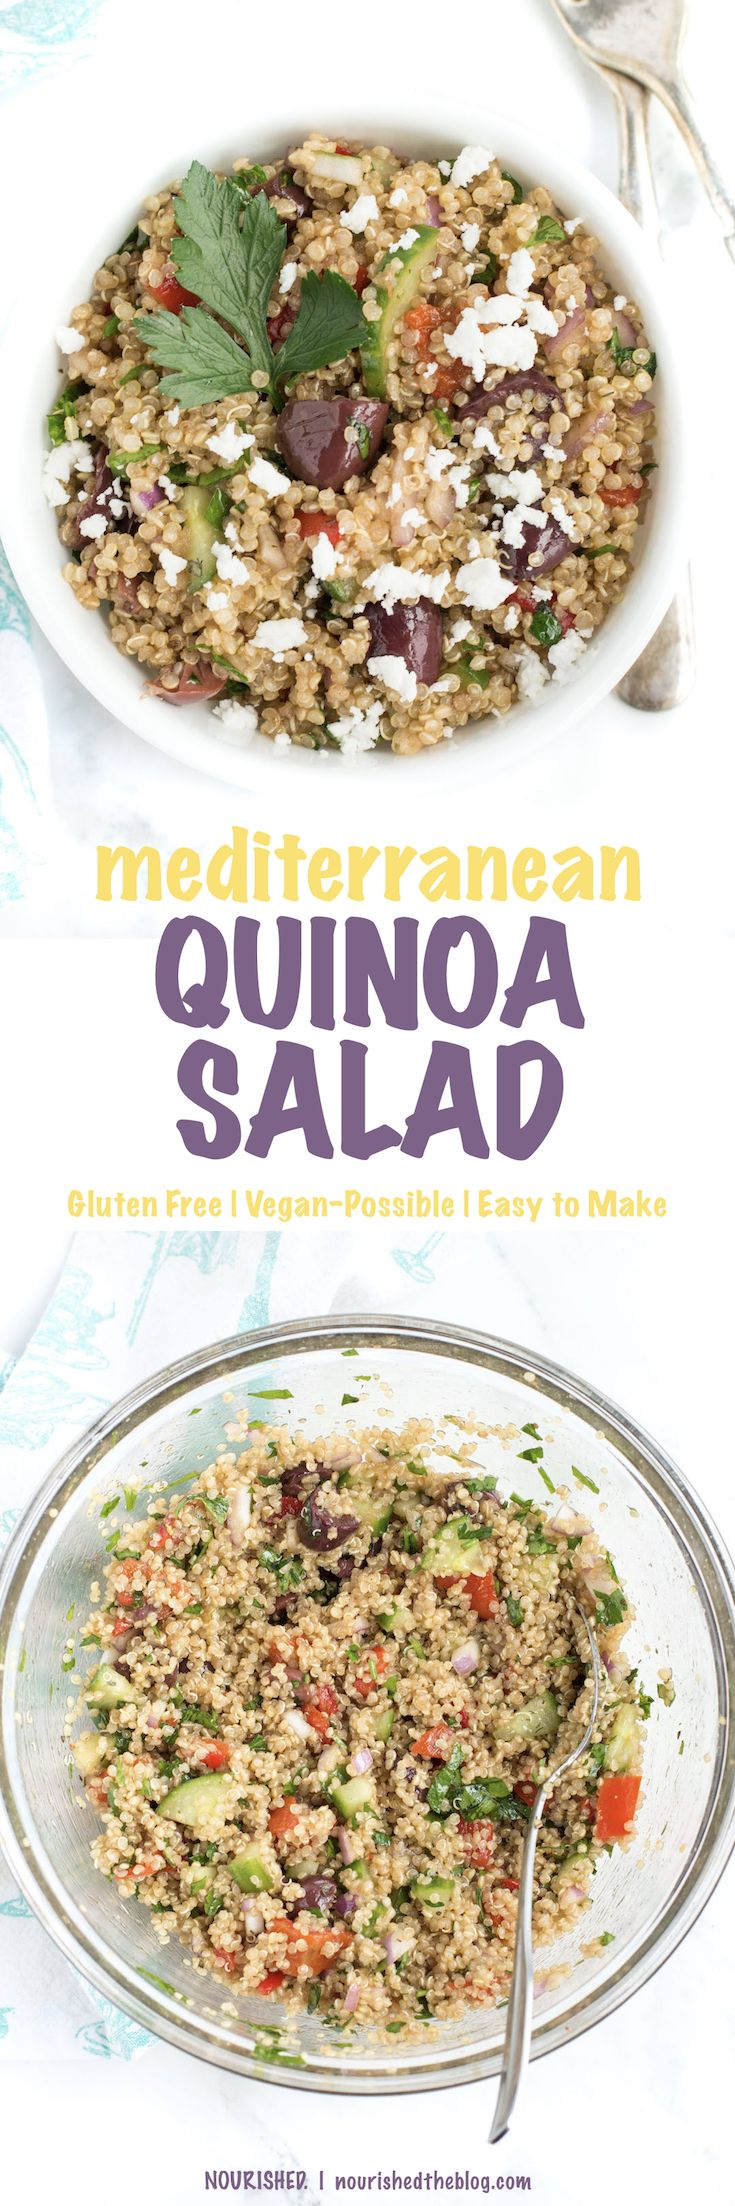 Gluten Free Mediterranean Quinoa Salad | A healthy quinoa salad recipe that's so easy to make and bursting with bright and fresh flavours. Made with quinoa, lots of veggies and crumbled cheese on top, this salad makes a great lunch or healthy dinner side dish any night of the week.